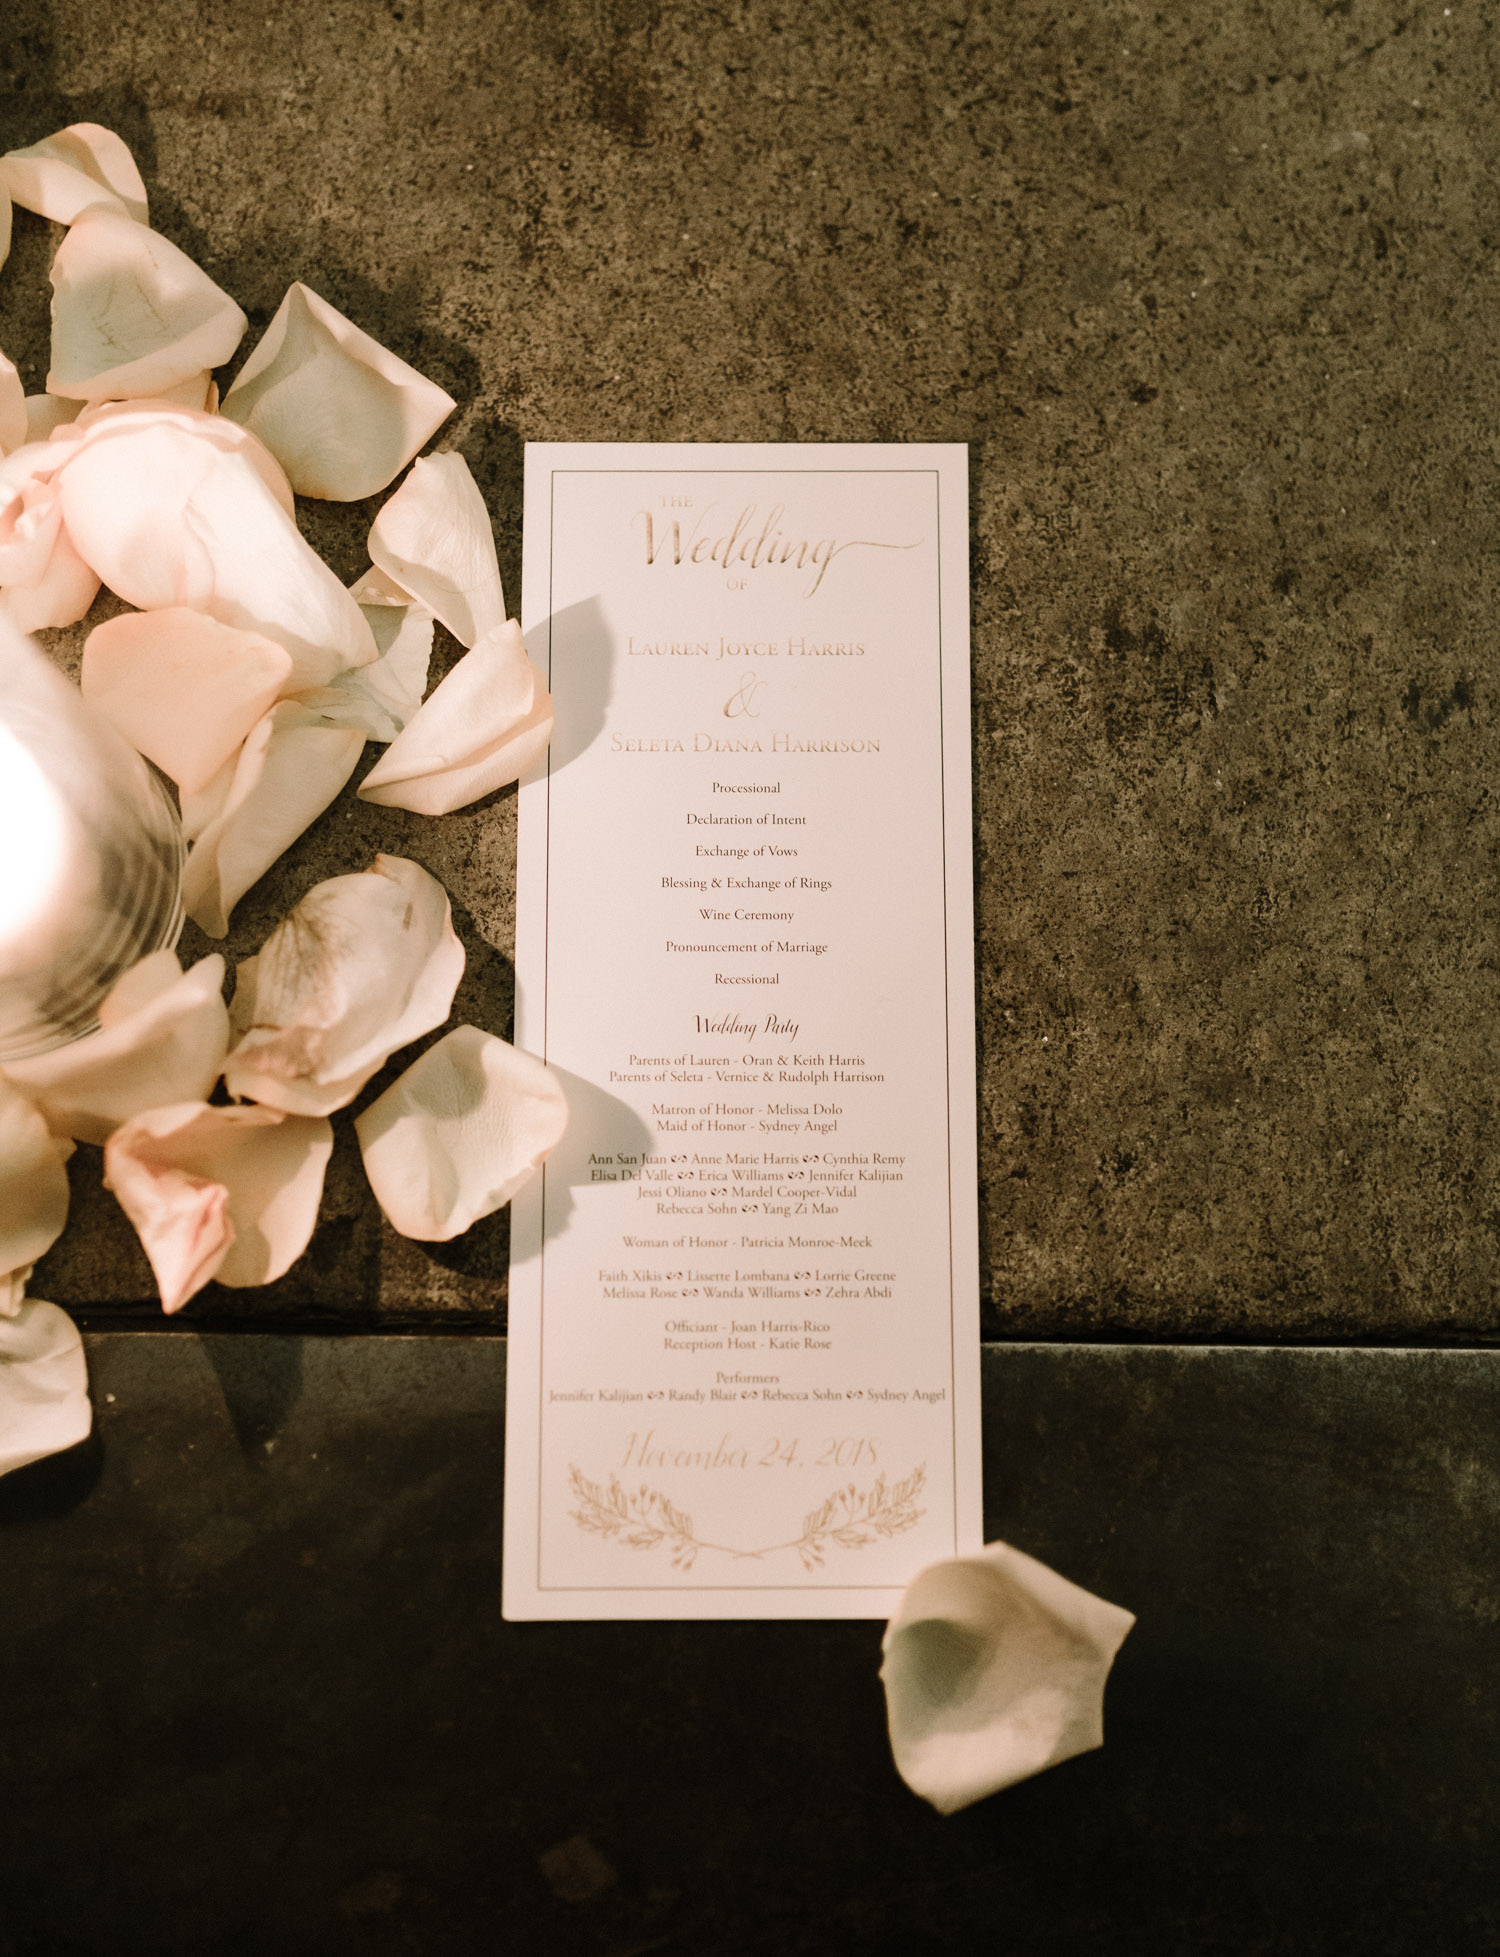 A wedding program rests with candles surrounded by rose petals at Brooklyn Winery in New York City